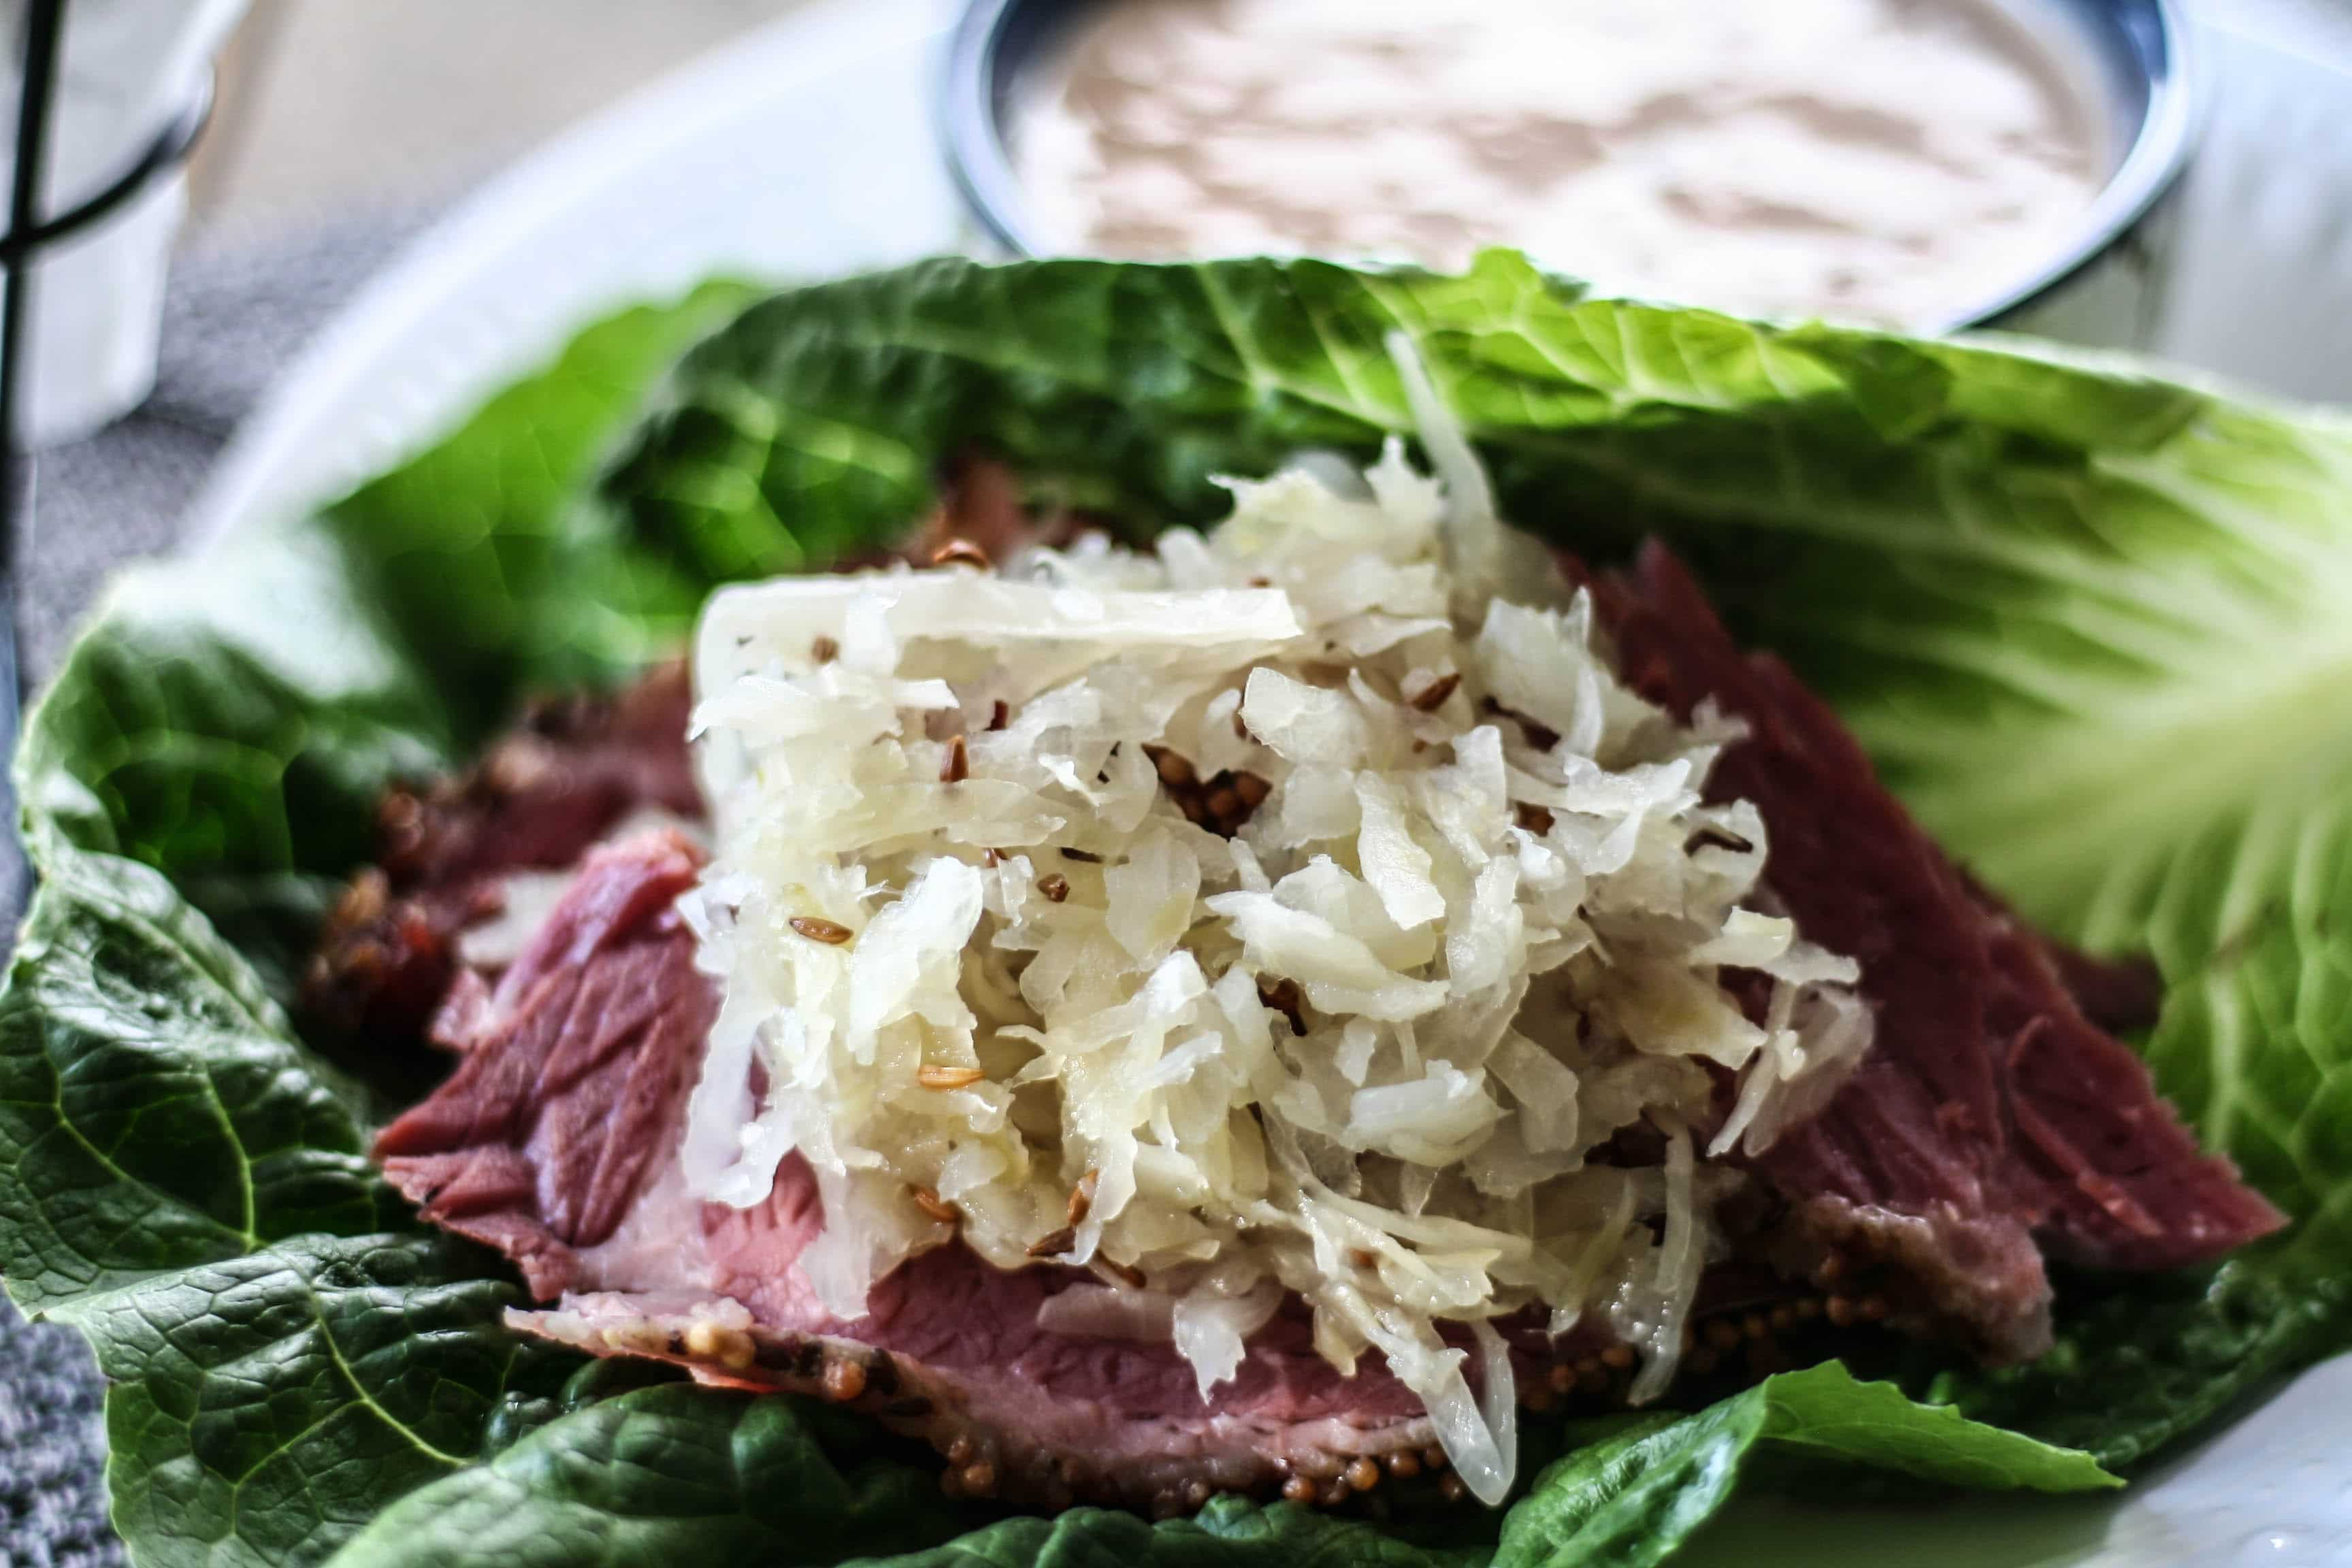 a Paleo Reuben lettuce wrap on a plate with a side dish of paleo thousand island dressing